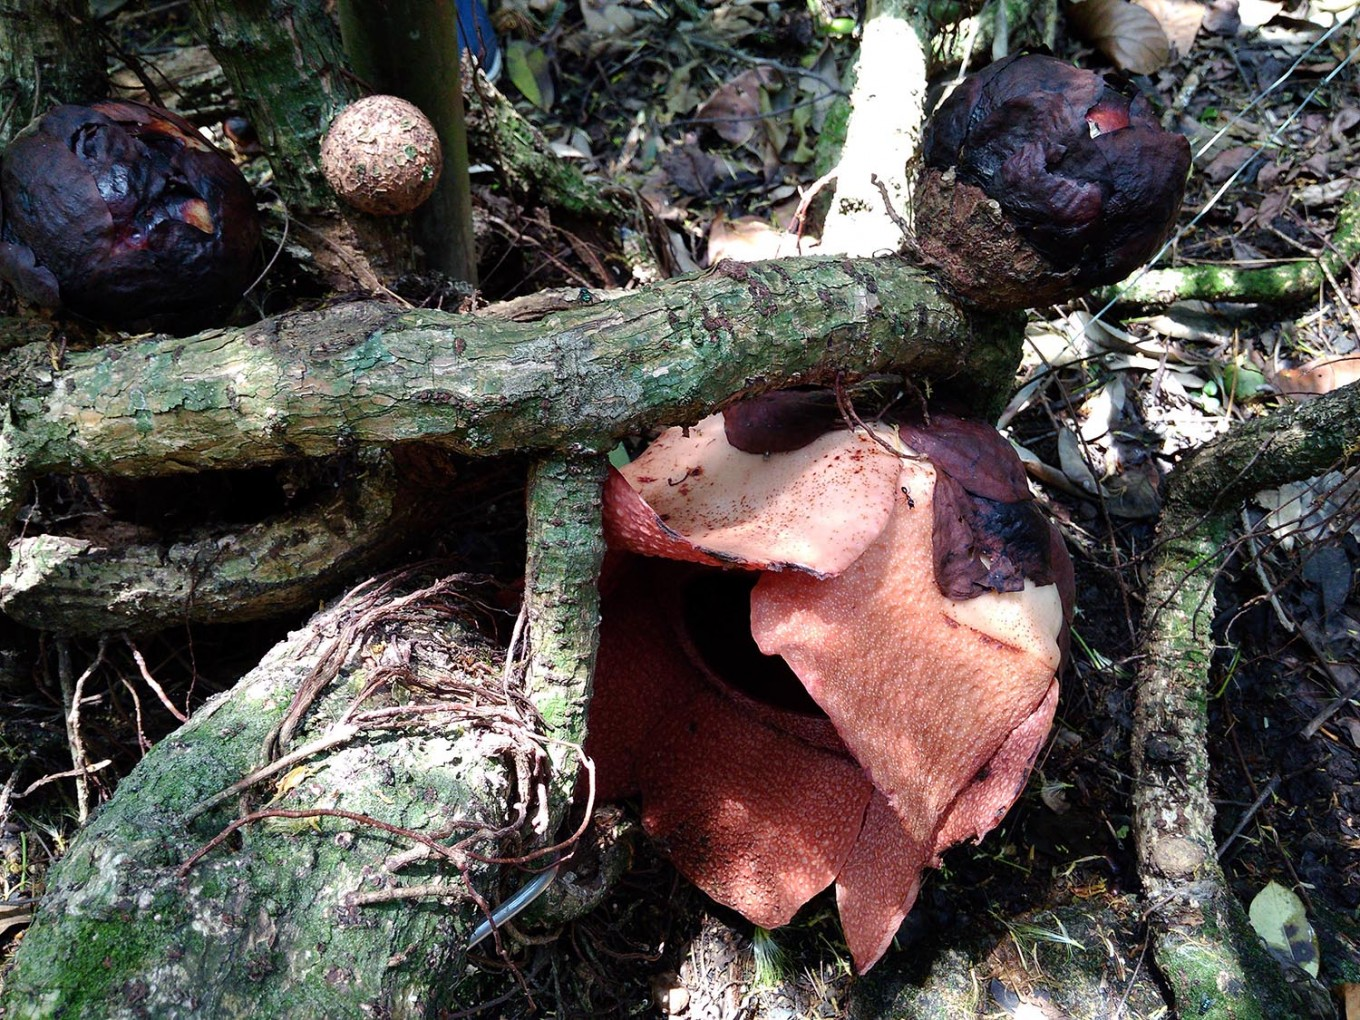 Rafflesia flower blooms at Bogor Botanical Garden